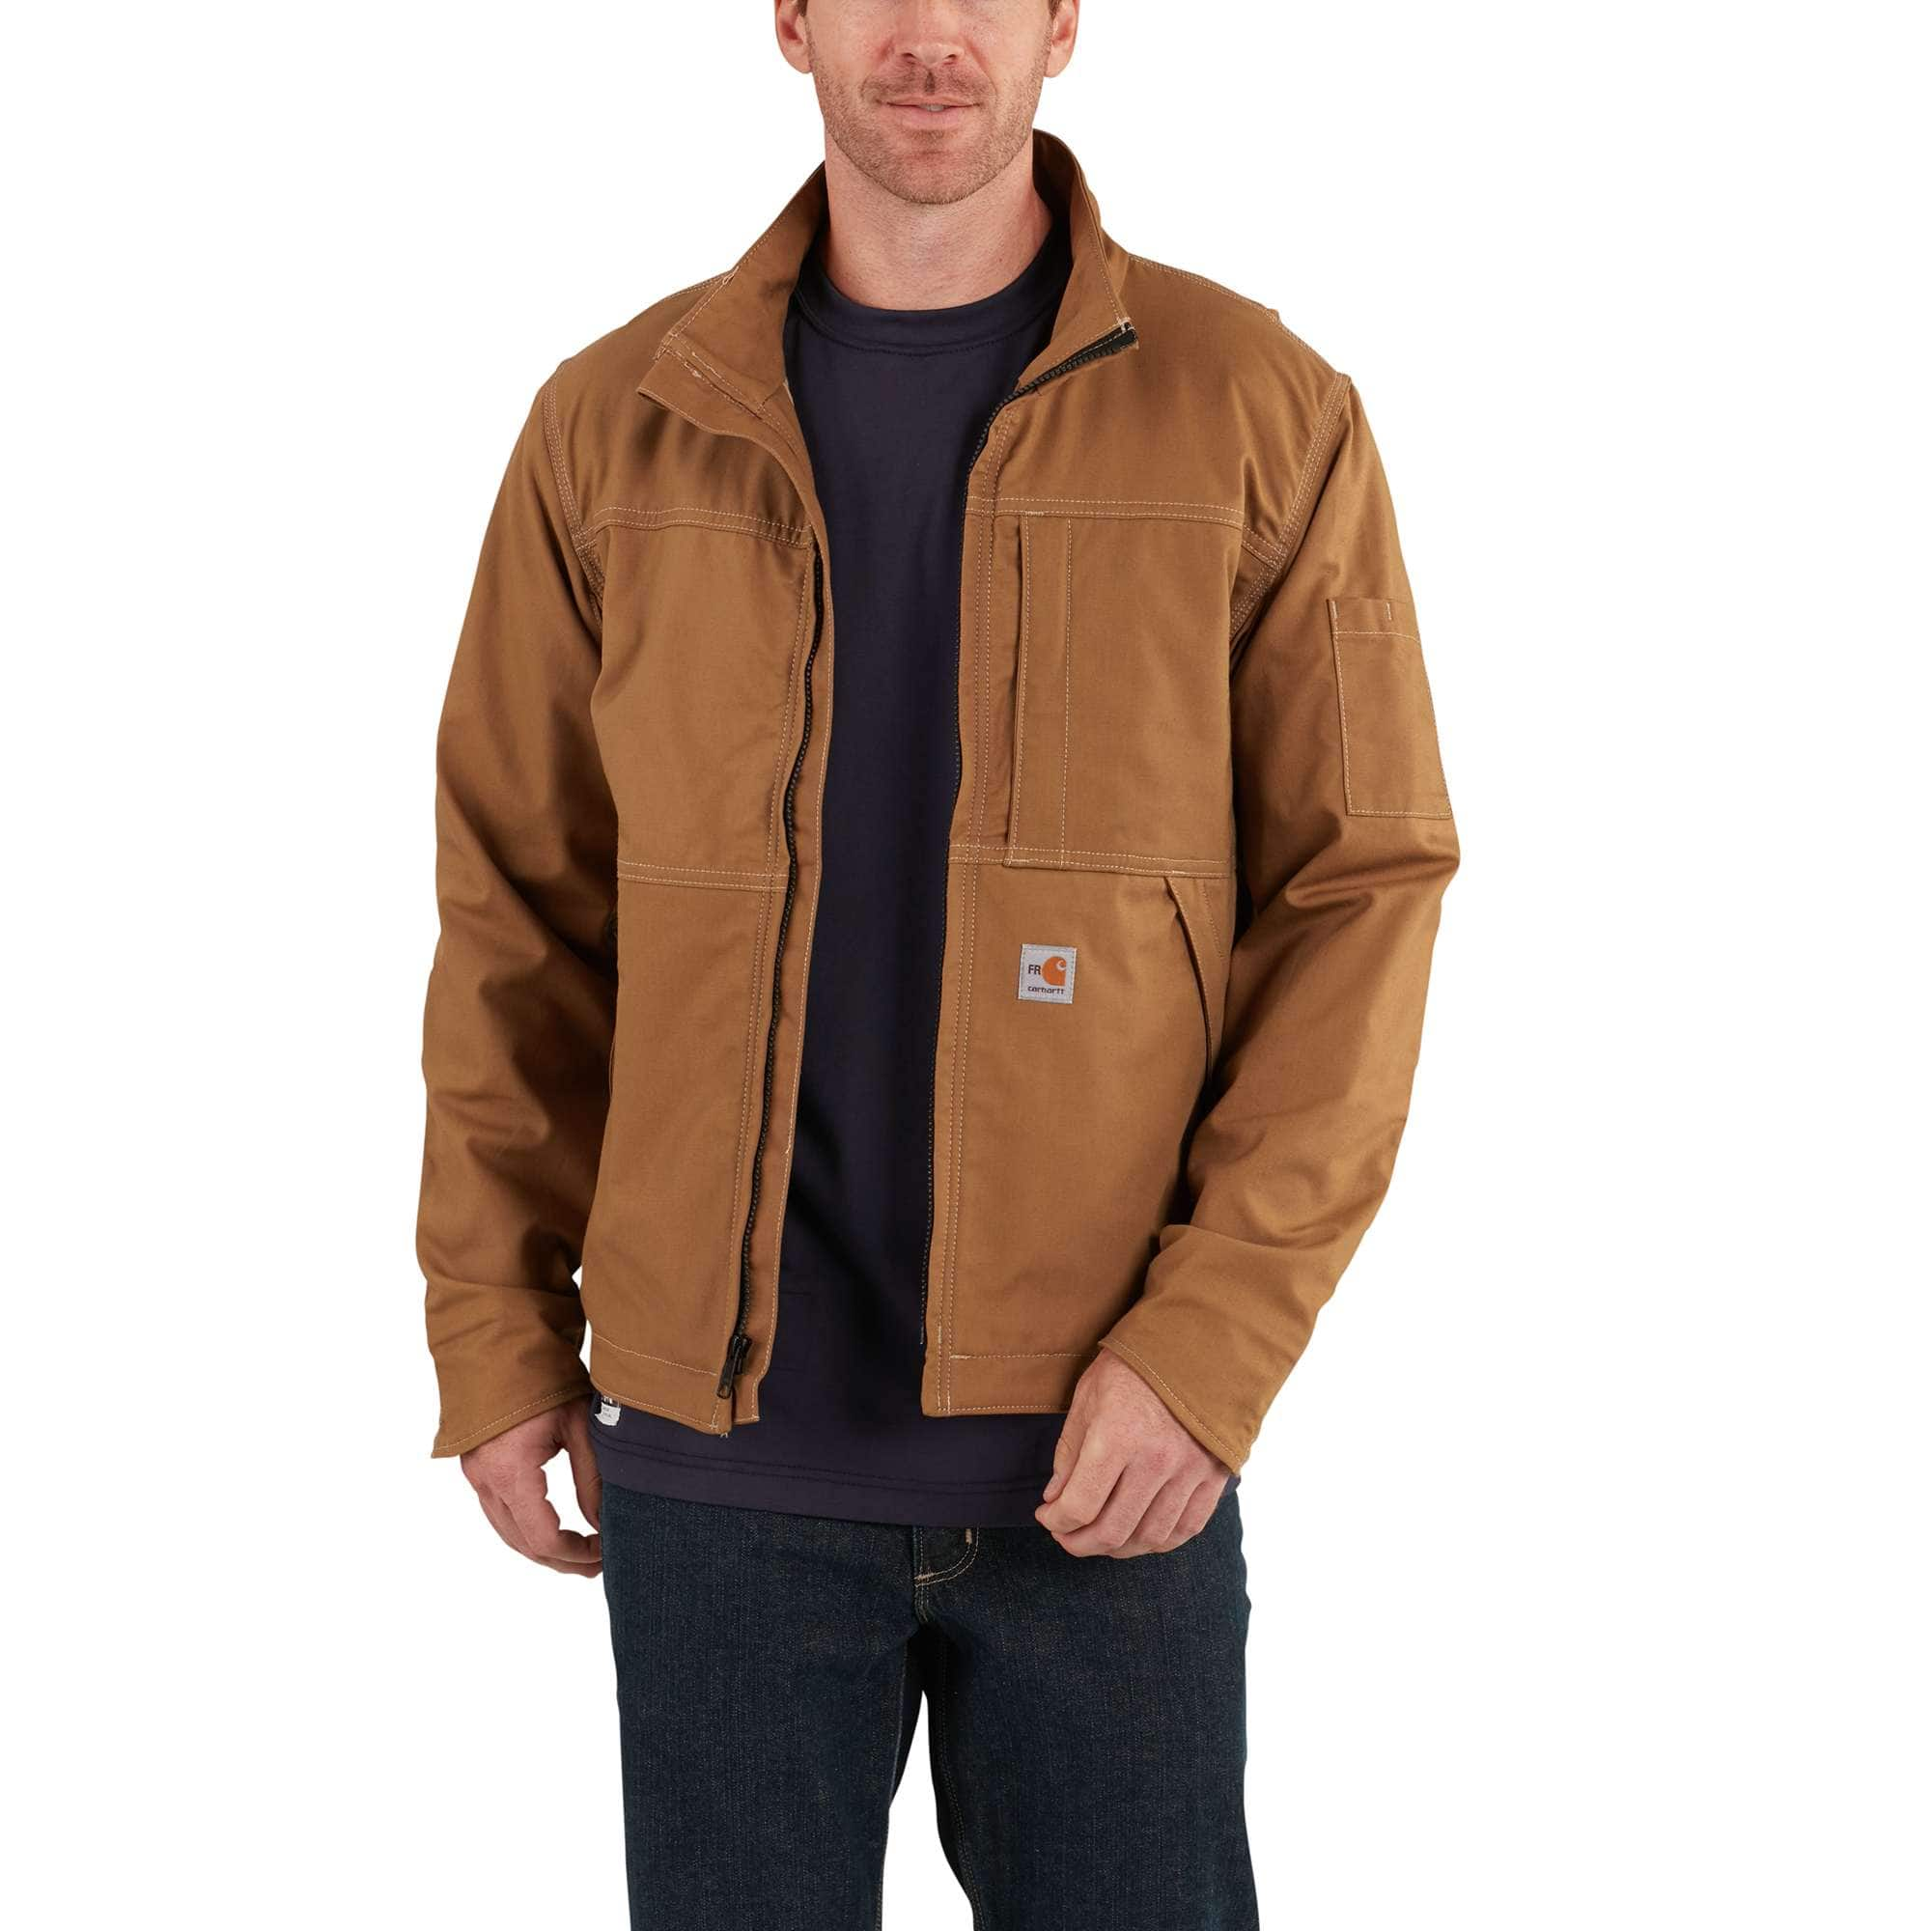 9cbaedce7347 Men s Full Swing® Quick Duck® Flame-Resistant Jacket